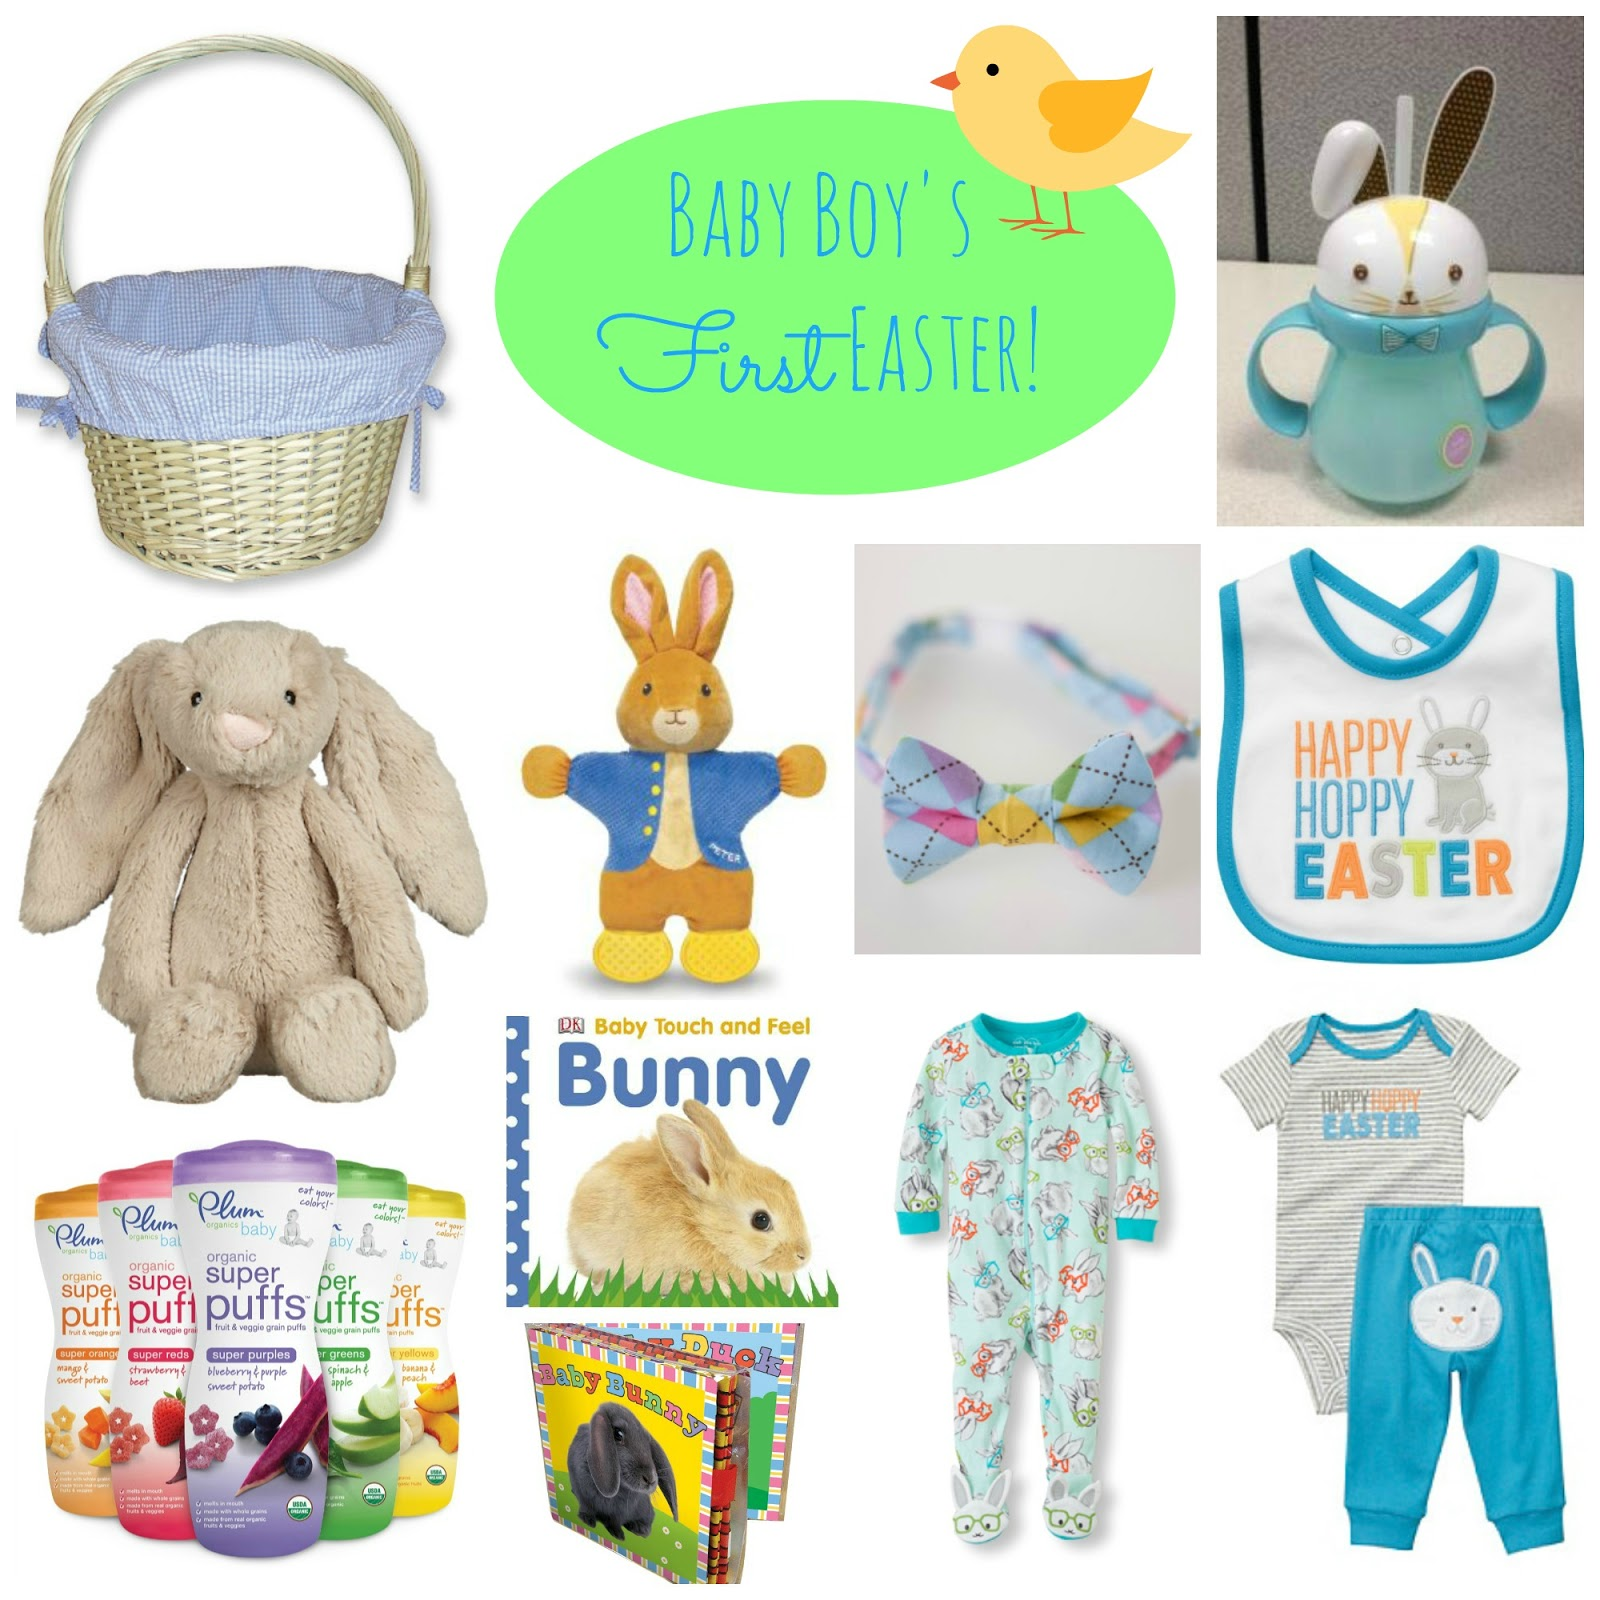 Simple suburbia babys first easter basket ideas it took me a while to decide what to put in there so i decided to share some ideas for boys and girls negle Gallery